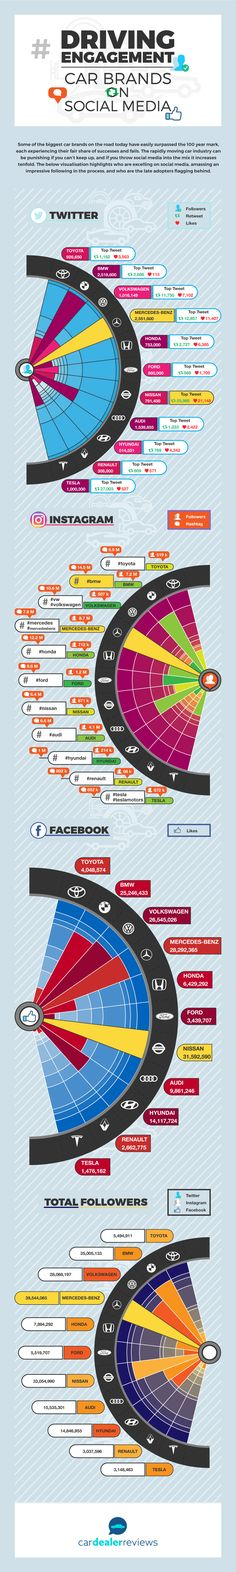 Top Car Brands on Social Media #Branding #Cars #SocialMedia #infografía #infographic